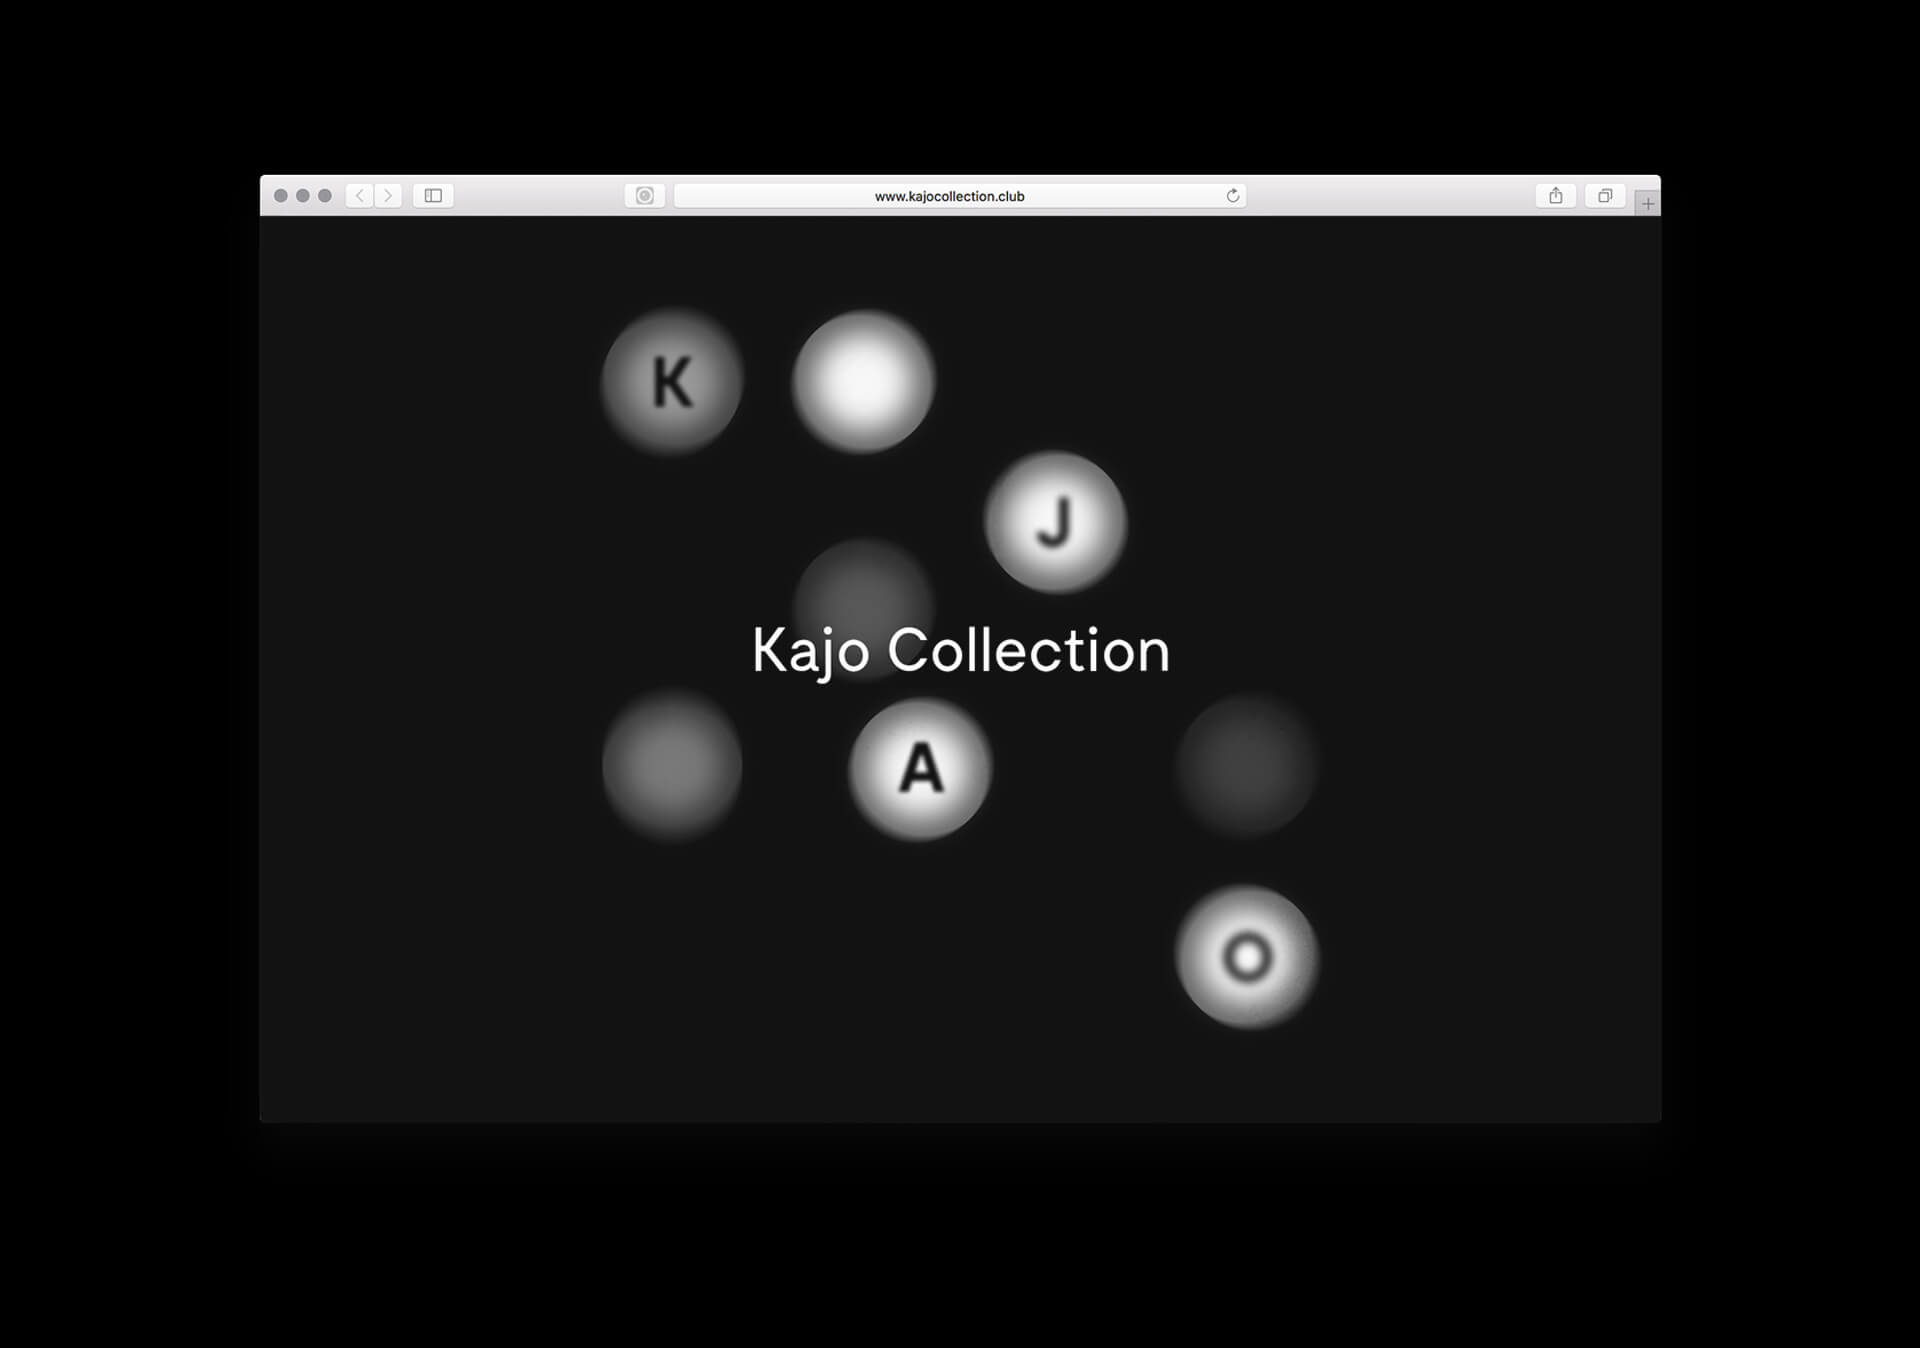 KajoCollection_Website_Entry